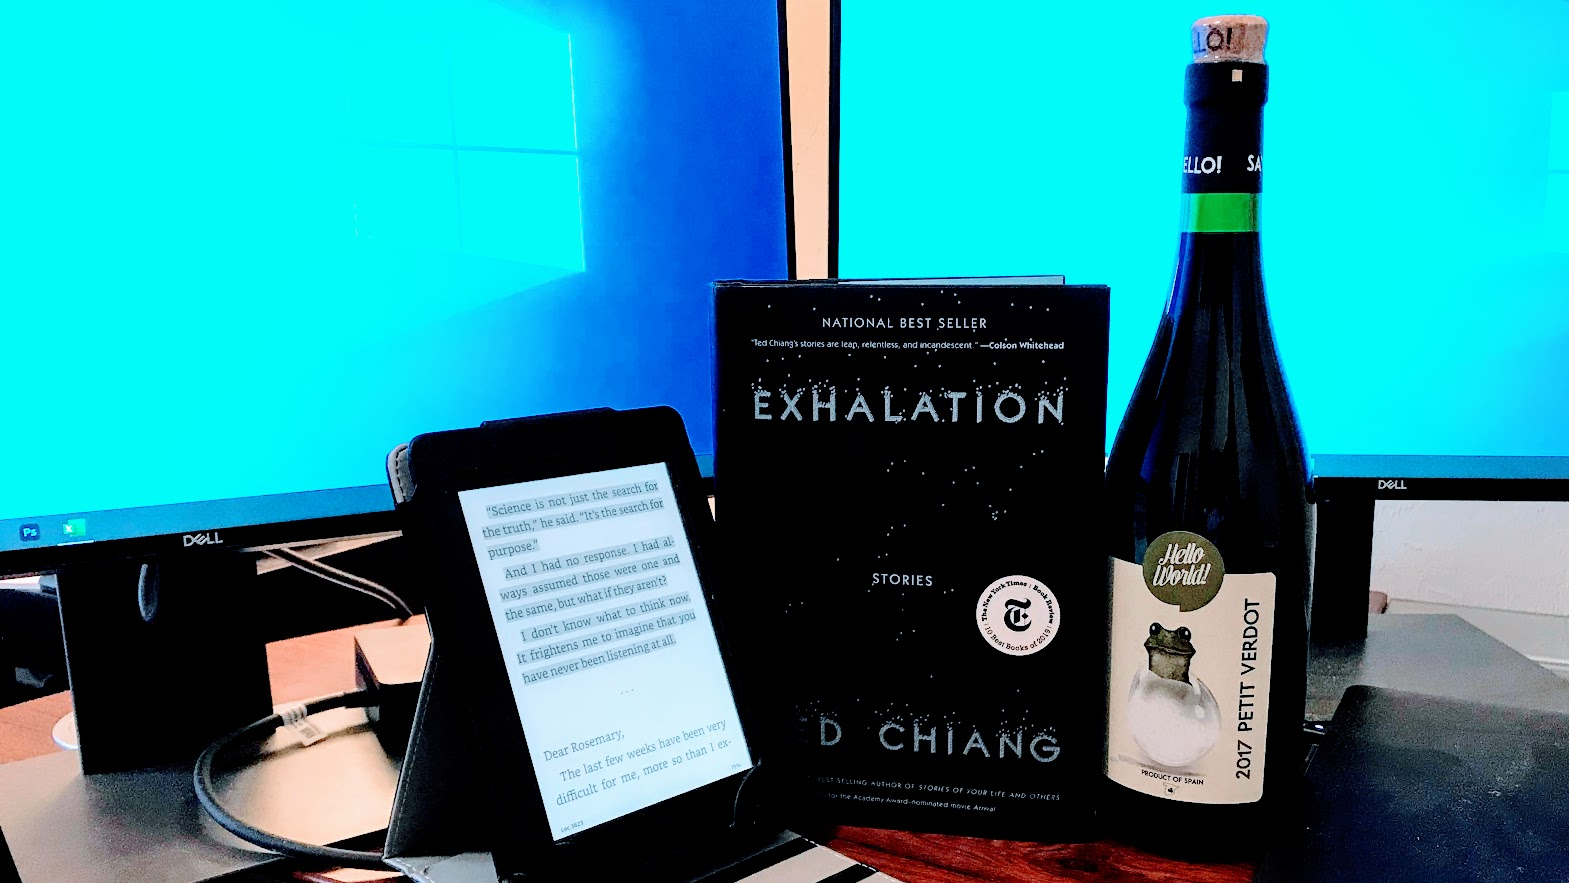 ted chiang exhalation book with wine and computer screens